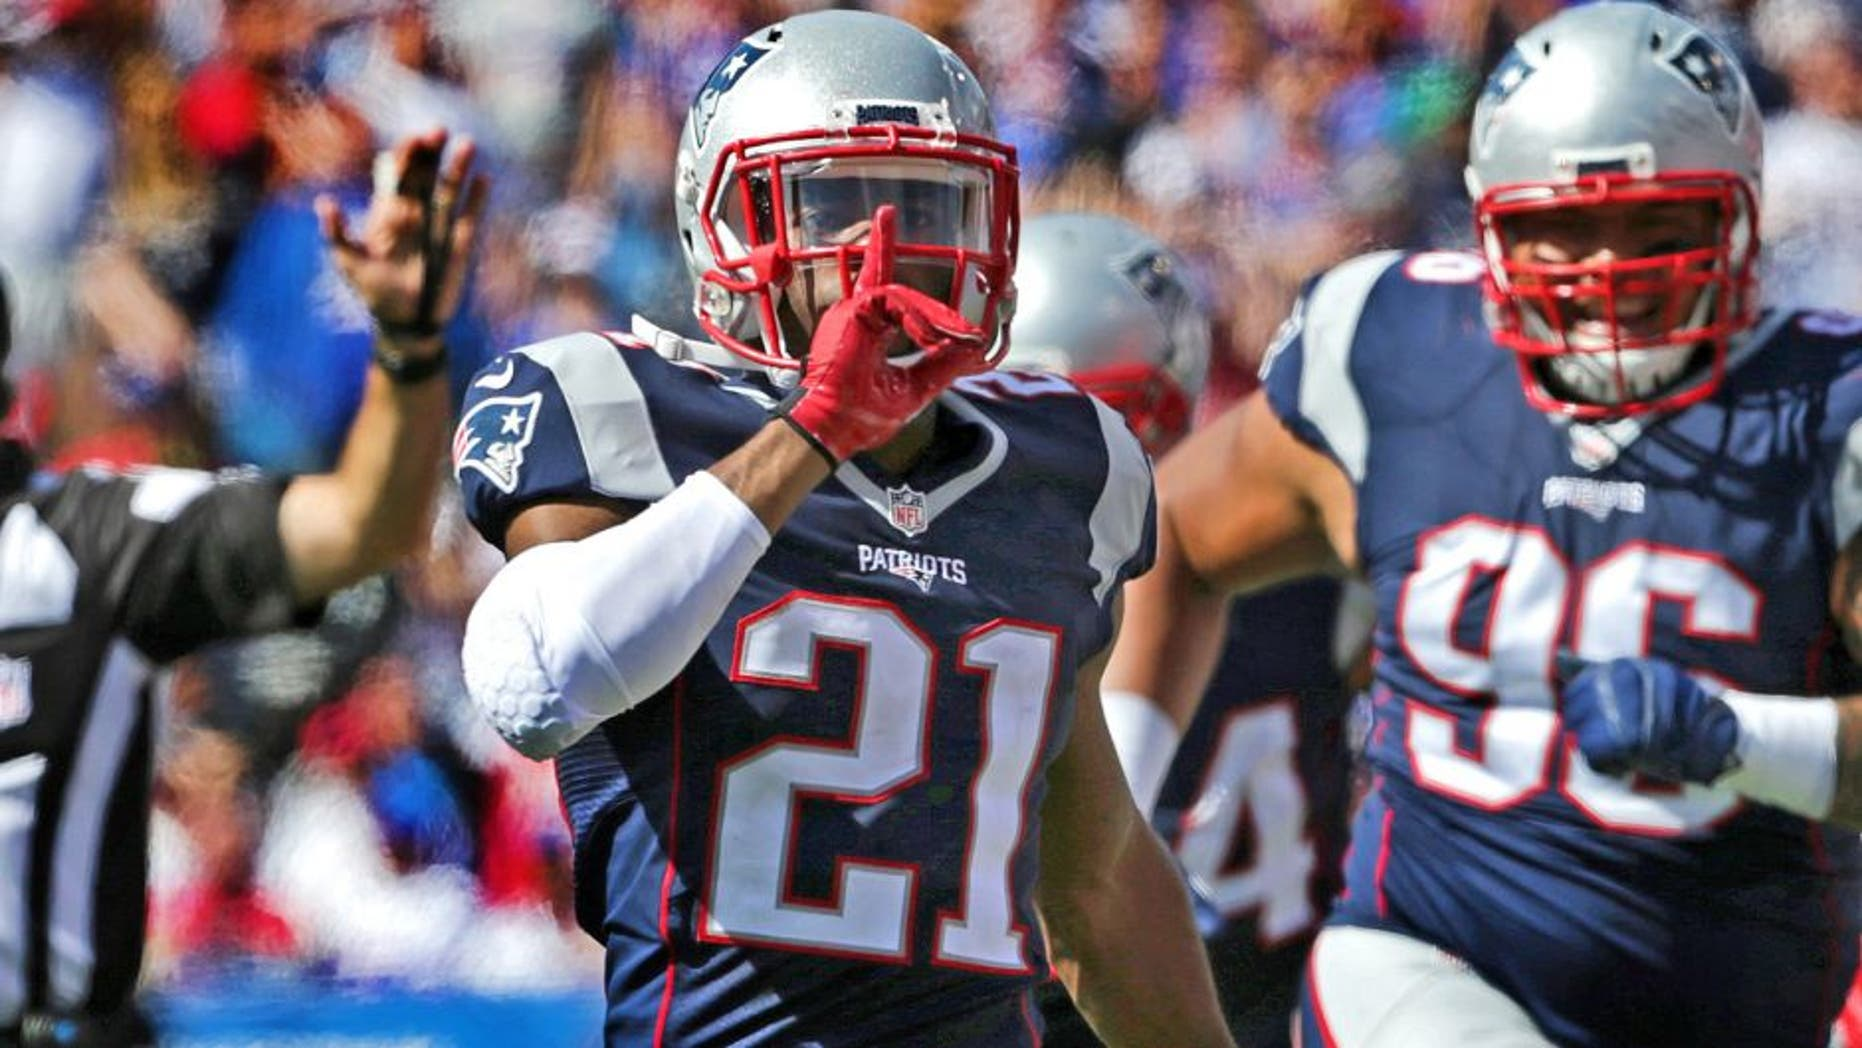 ORCHARD PARK, NY - SEPTEMBER 20: New England Patriots cornerback Malcolm Butler (#21) calls for silence after his interception on a deflection in the second quarter. The New England Patriots take on the Buffalo Bills at Ralph Wilson Stadium in Orchard Park, New York, Sept. 20, 2015. (Photo by Barry Chin/The Boston Globe via Getty Images)